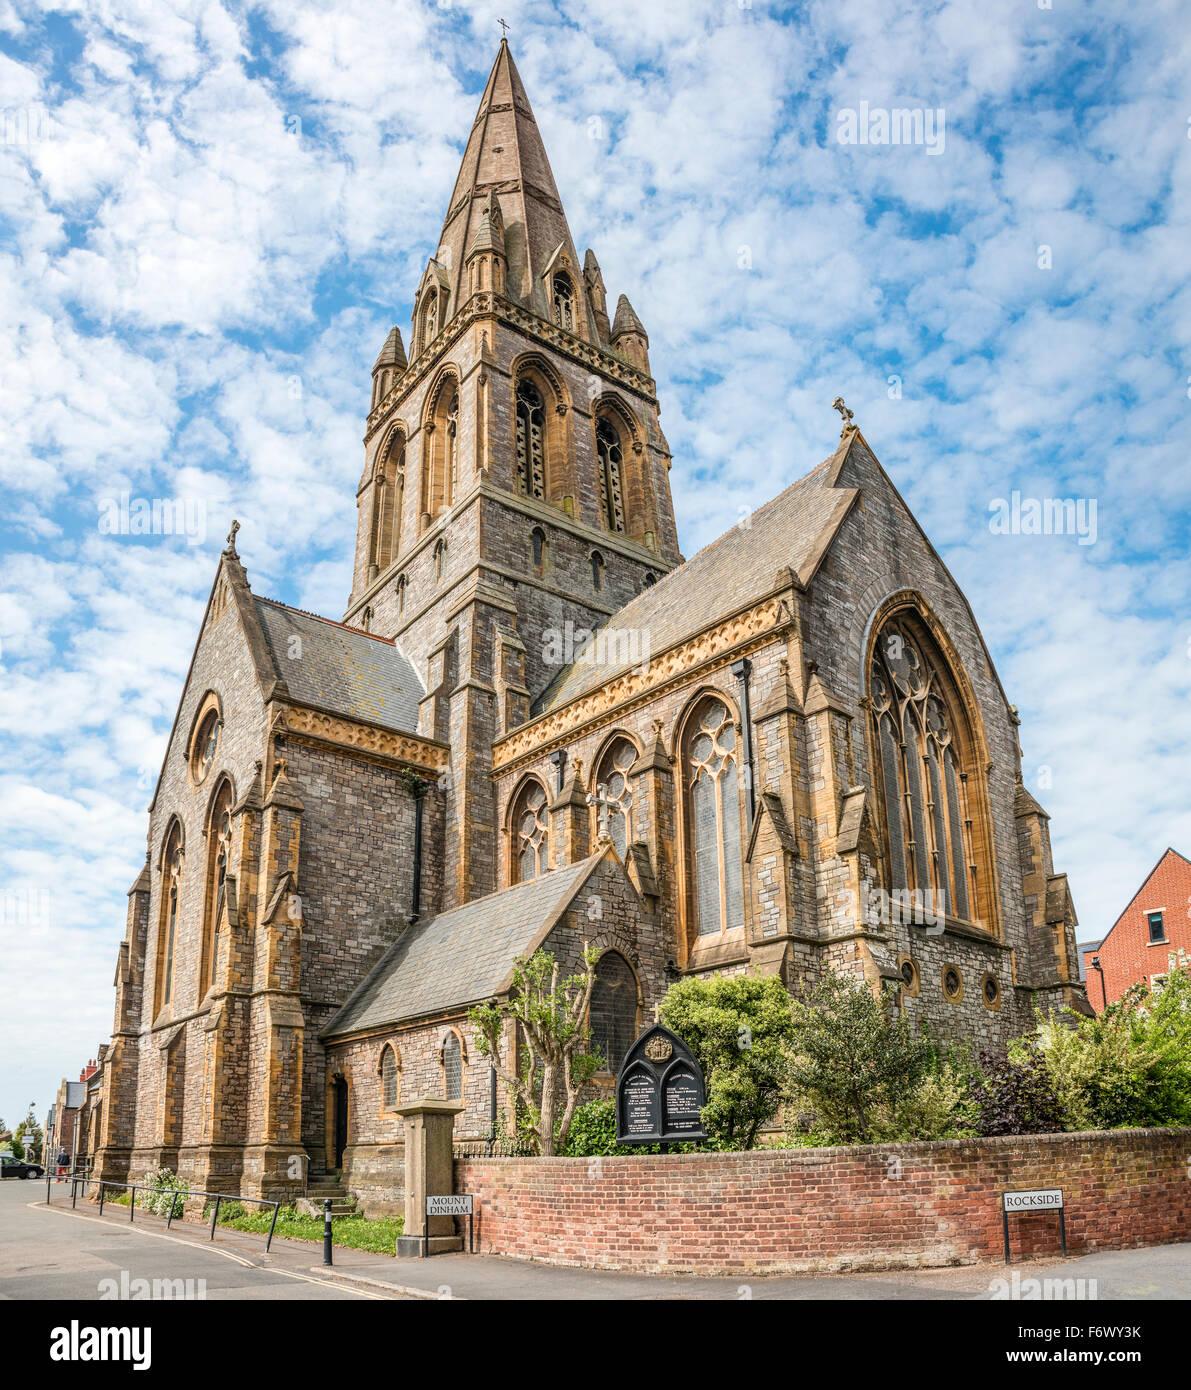 St Michael and All Angels Church on Mount Dinham, Exeter, Devon, UK Stock Photo